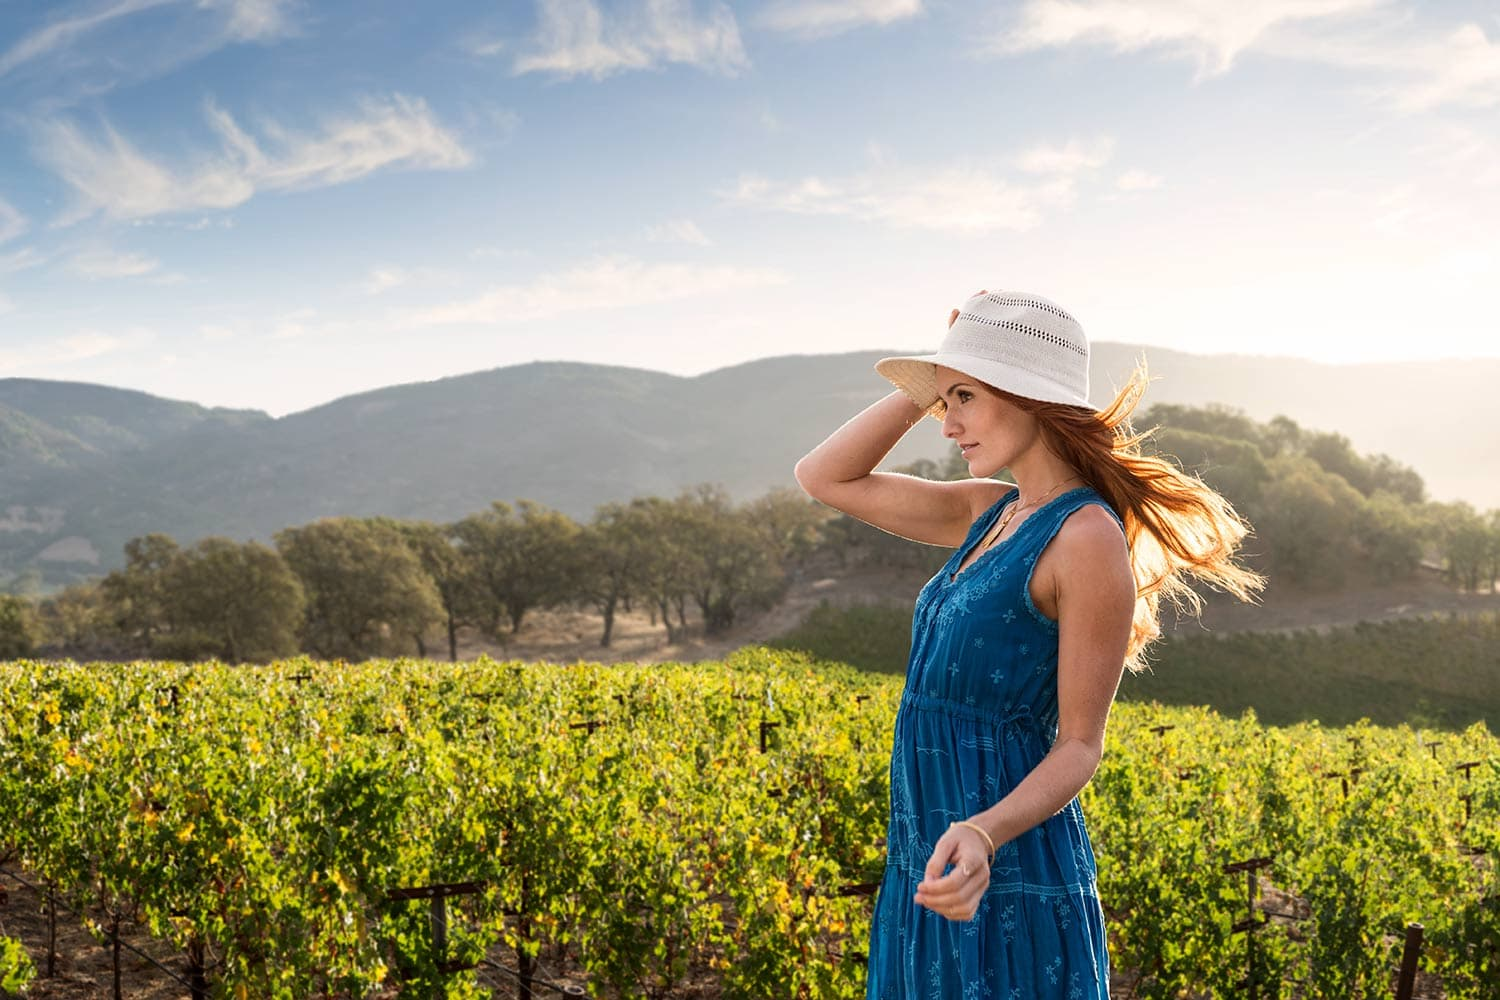 Female-with-hat-in-vineyard-wind-blowing-hair-Rod-McLean